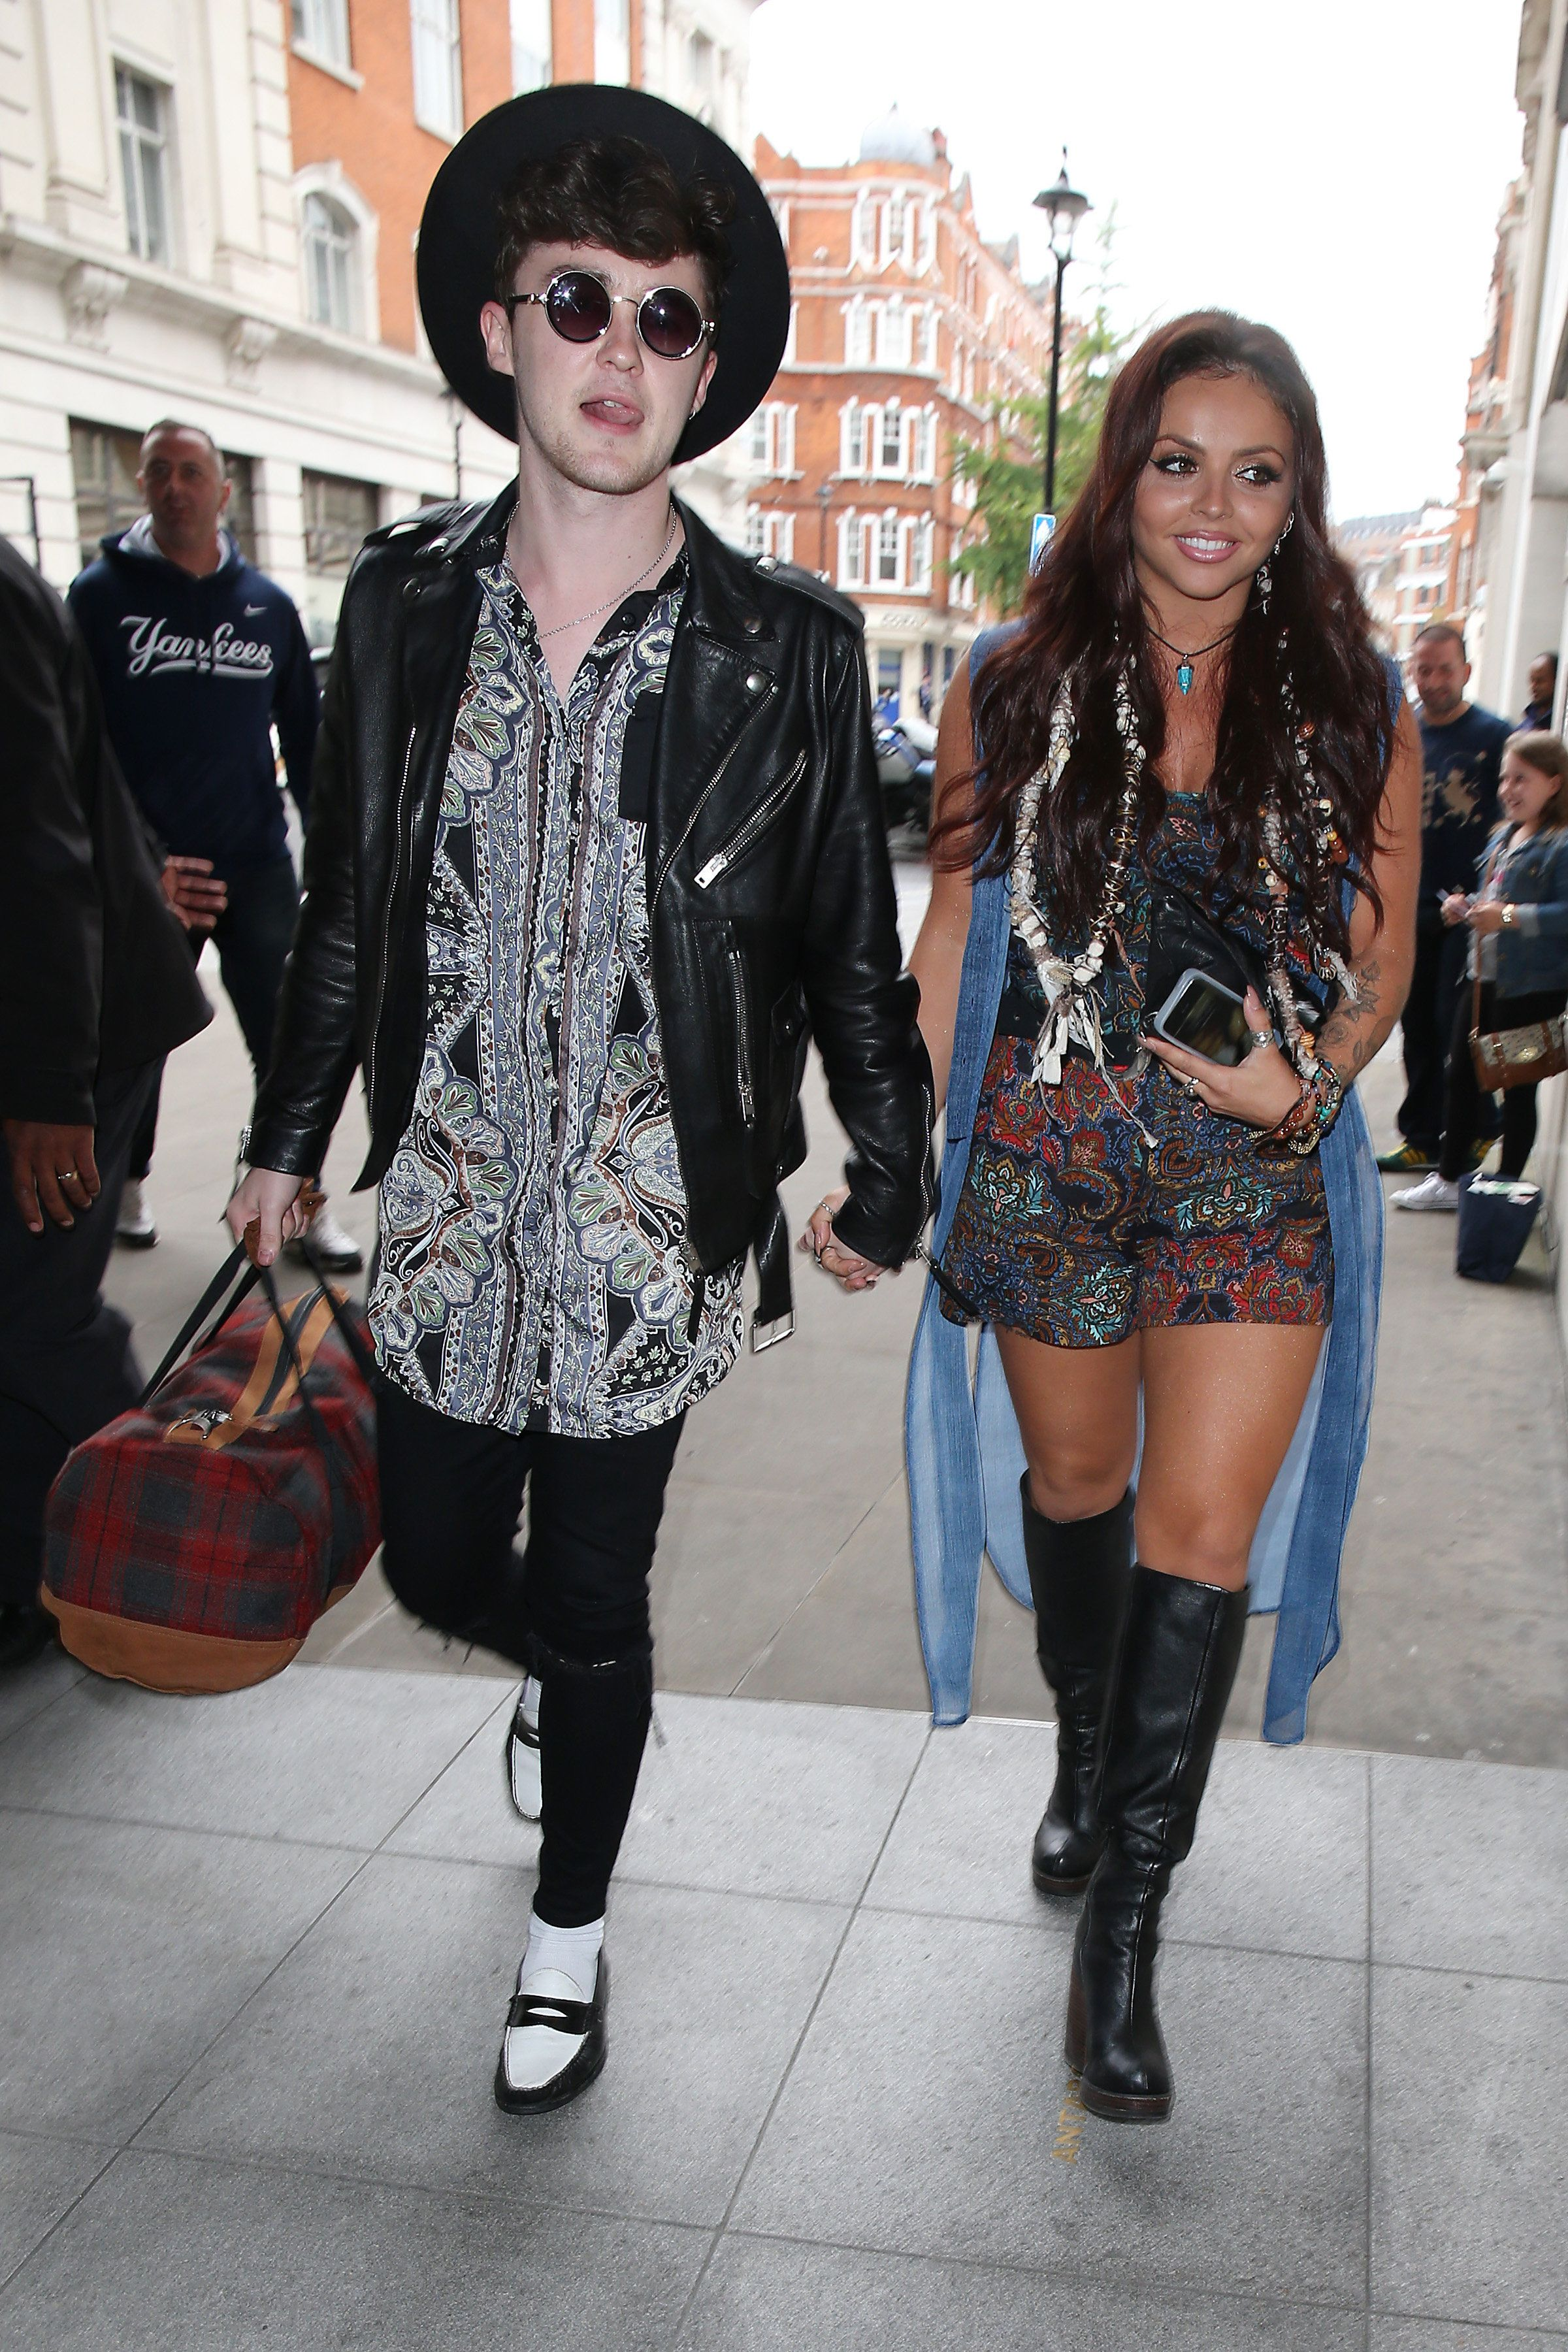 Jesy Nelson Could Be The Latest Star To Have A Break-Up Song Penned About